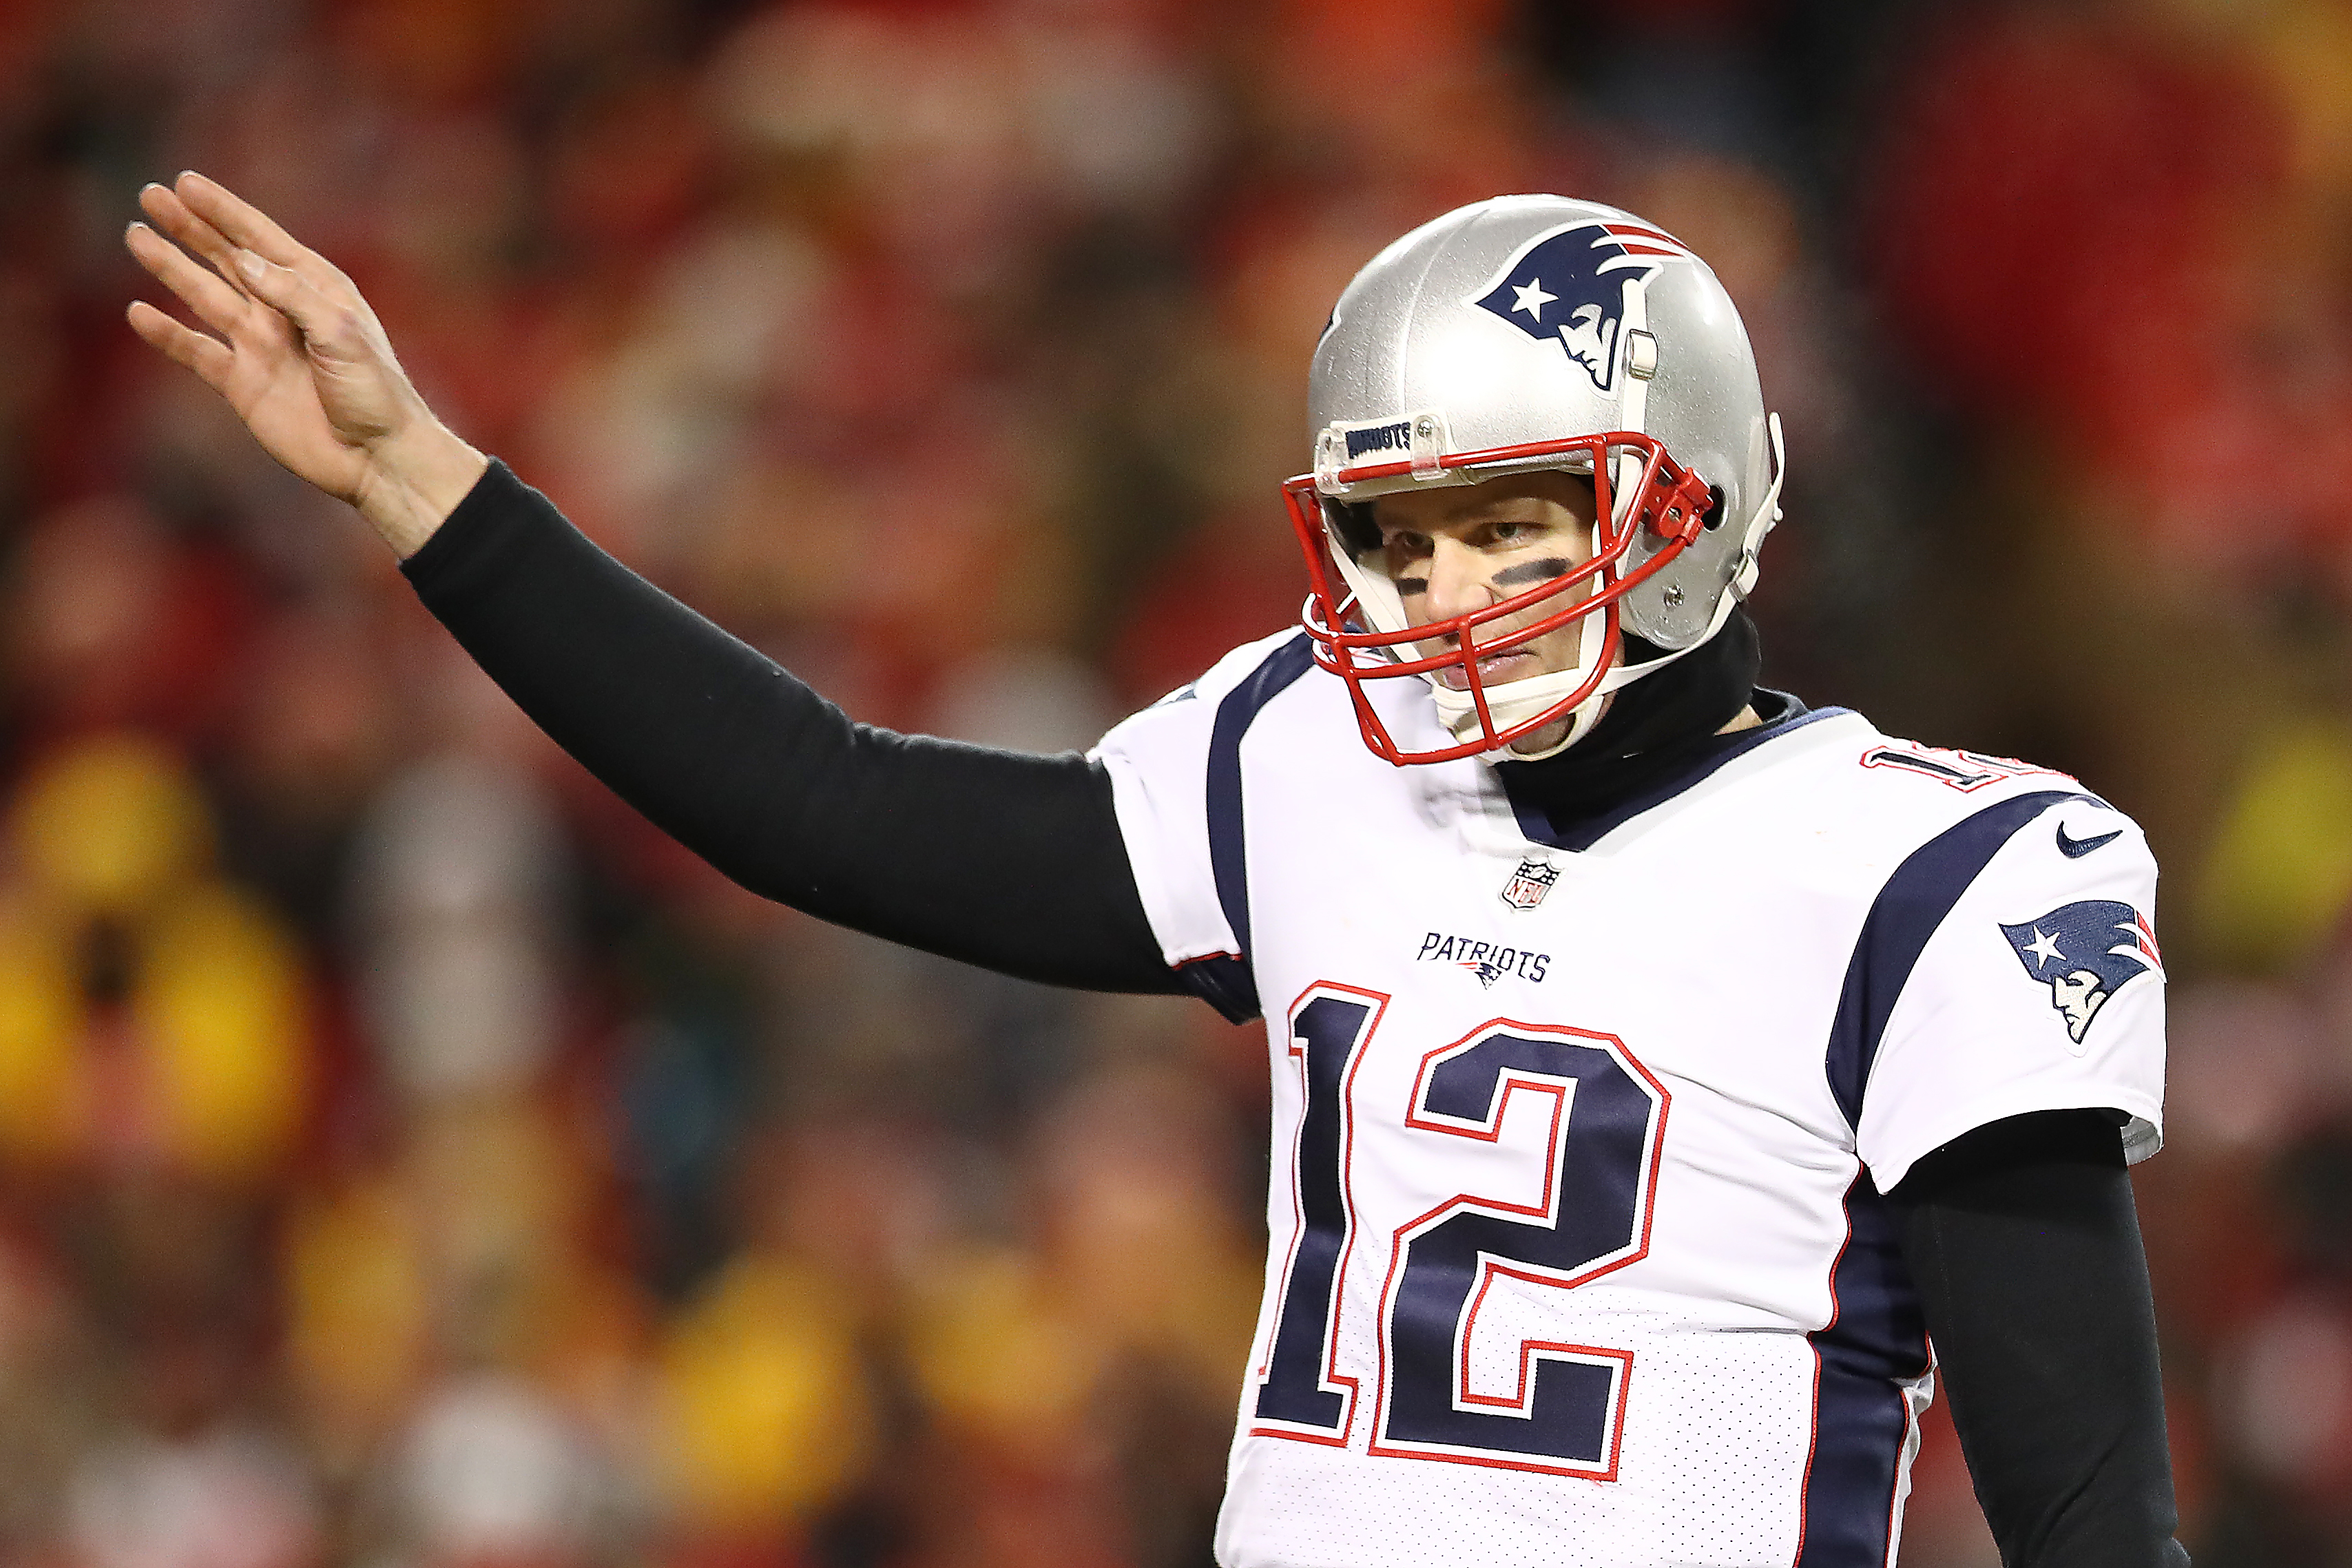 Tom Brady, number 12 of the New England Patriots, gestures downfield in the AFC Championship football game against the Kansas City Chiefs.